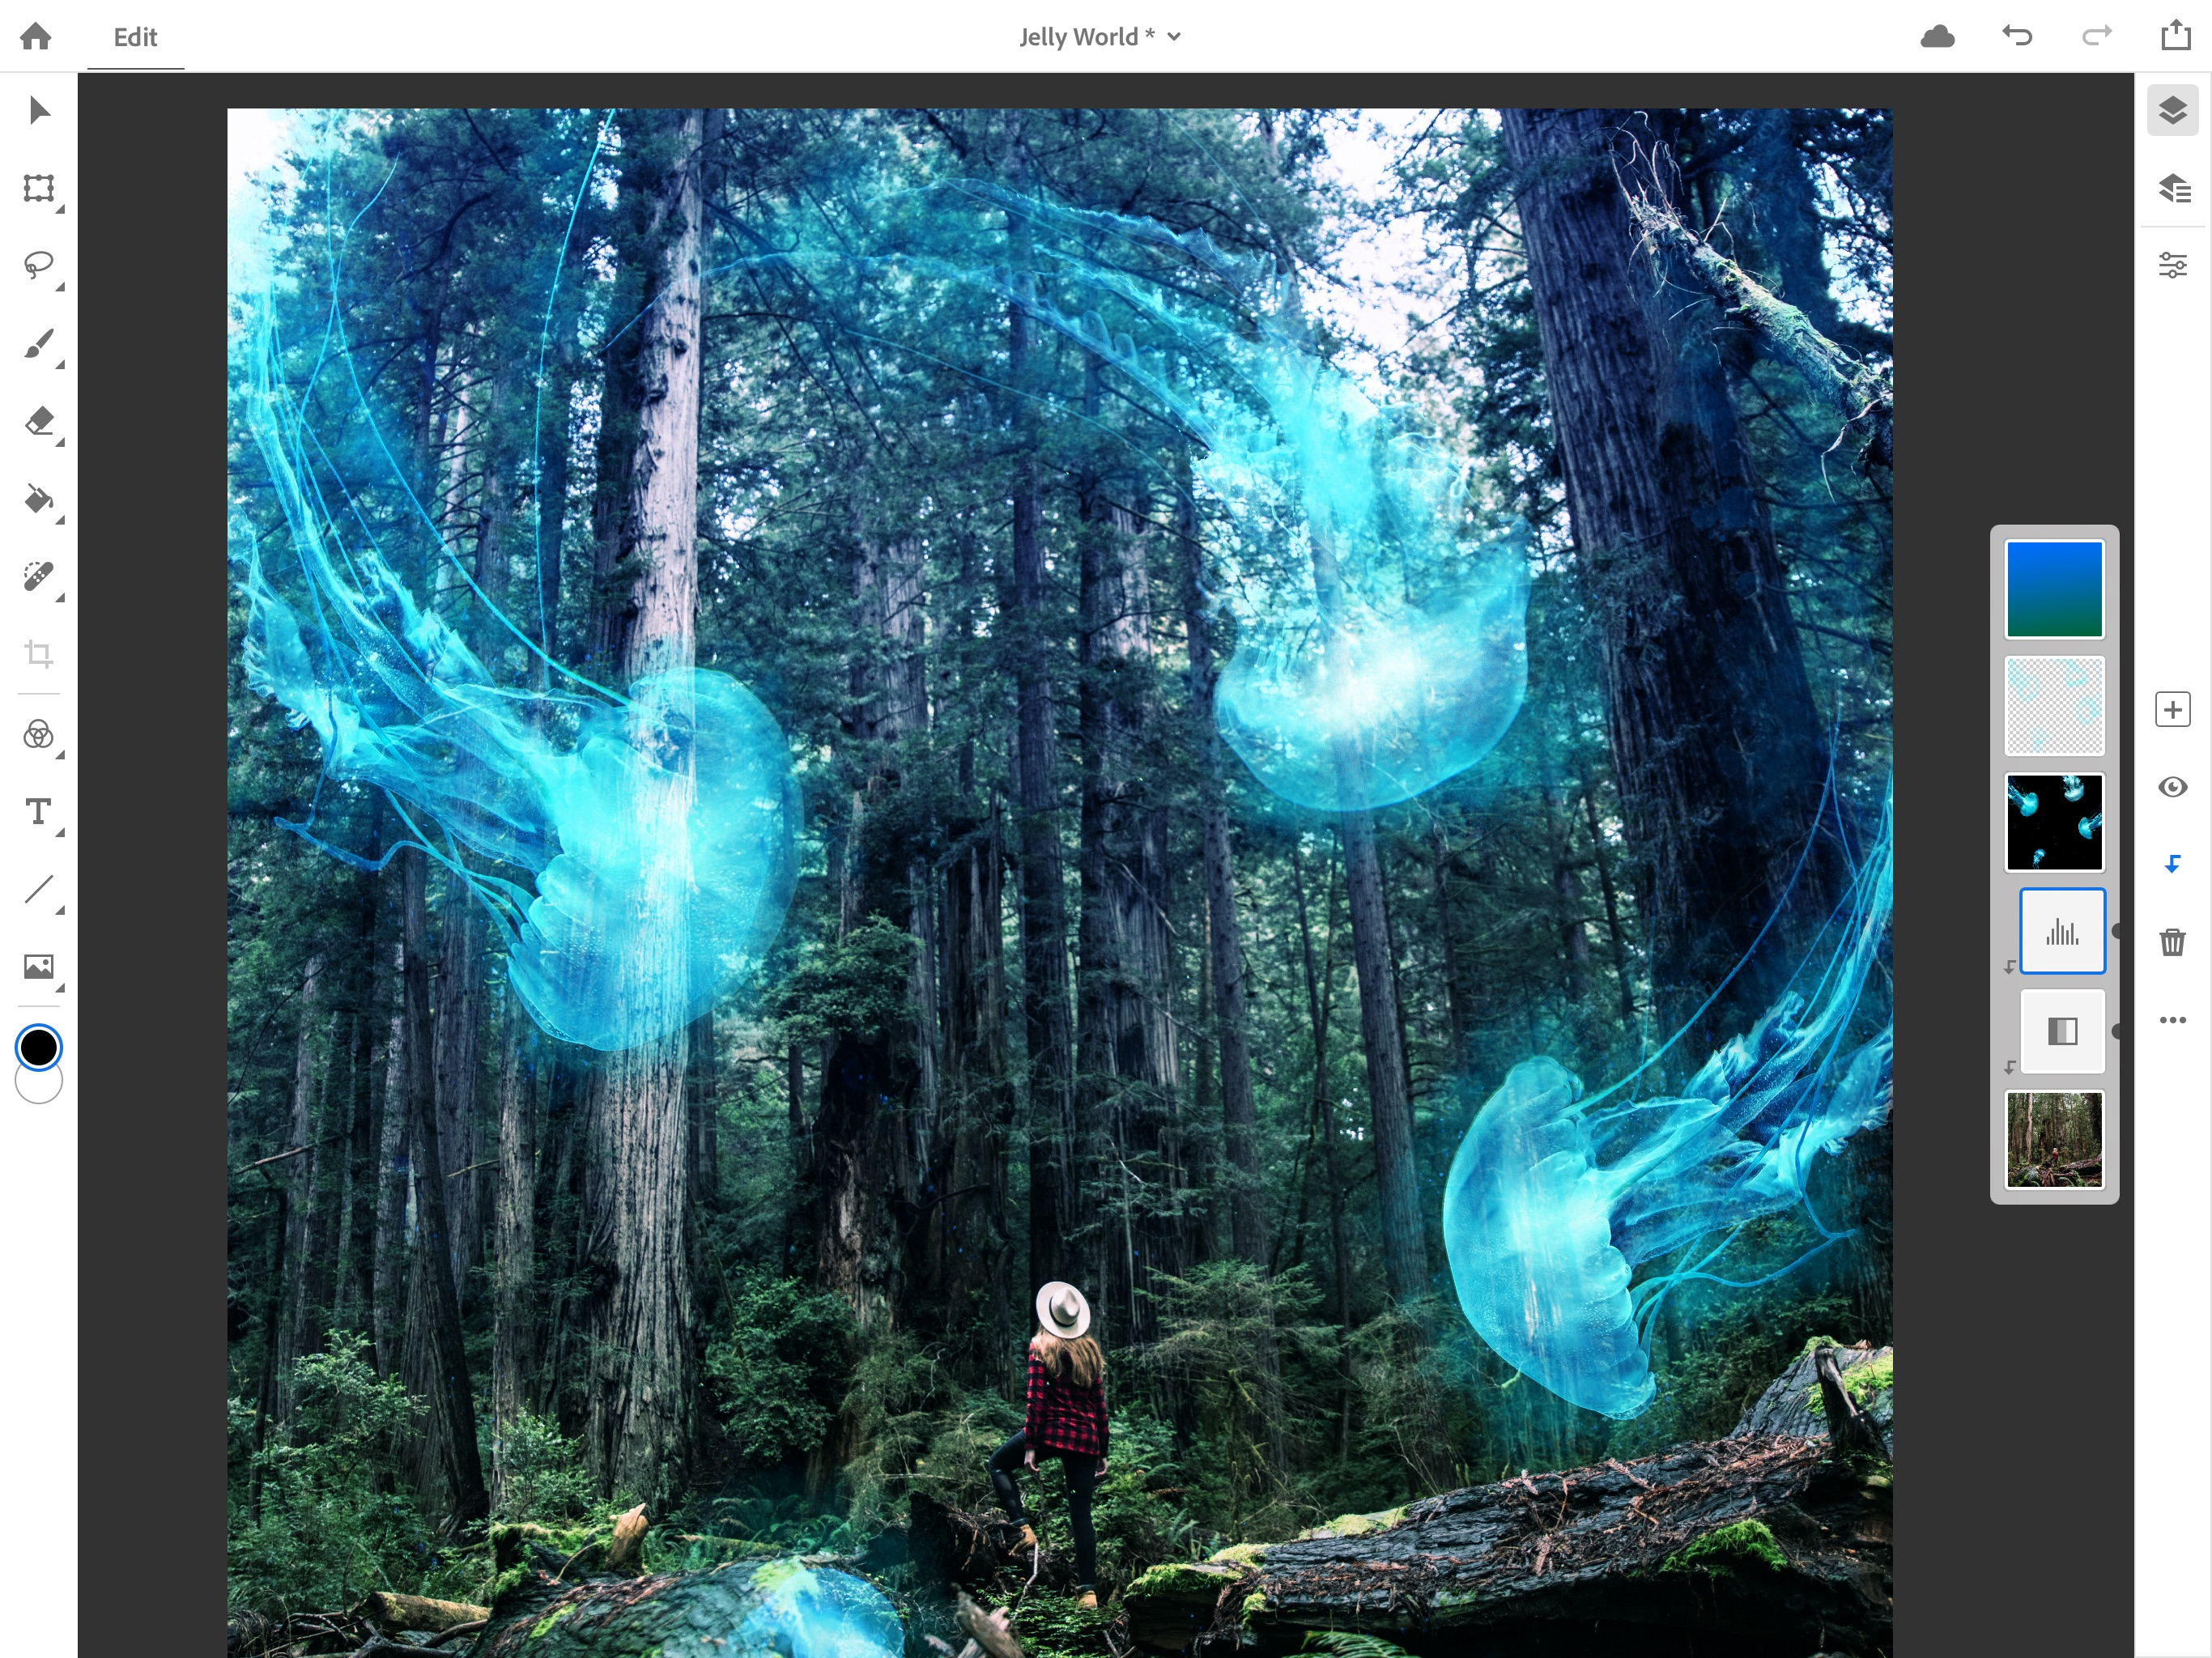 Adobe Is Bringing Photoshop Cc To The Ipad Techcrunch Use adobe photoshop to create your own artwork, edit photos and do much more with the images you take and find. adobe is bringing photoshop cc to the